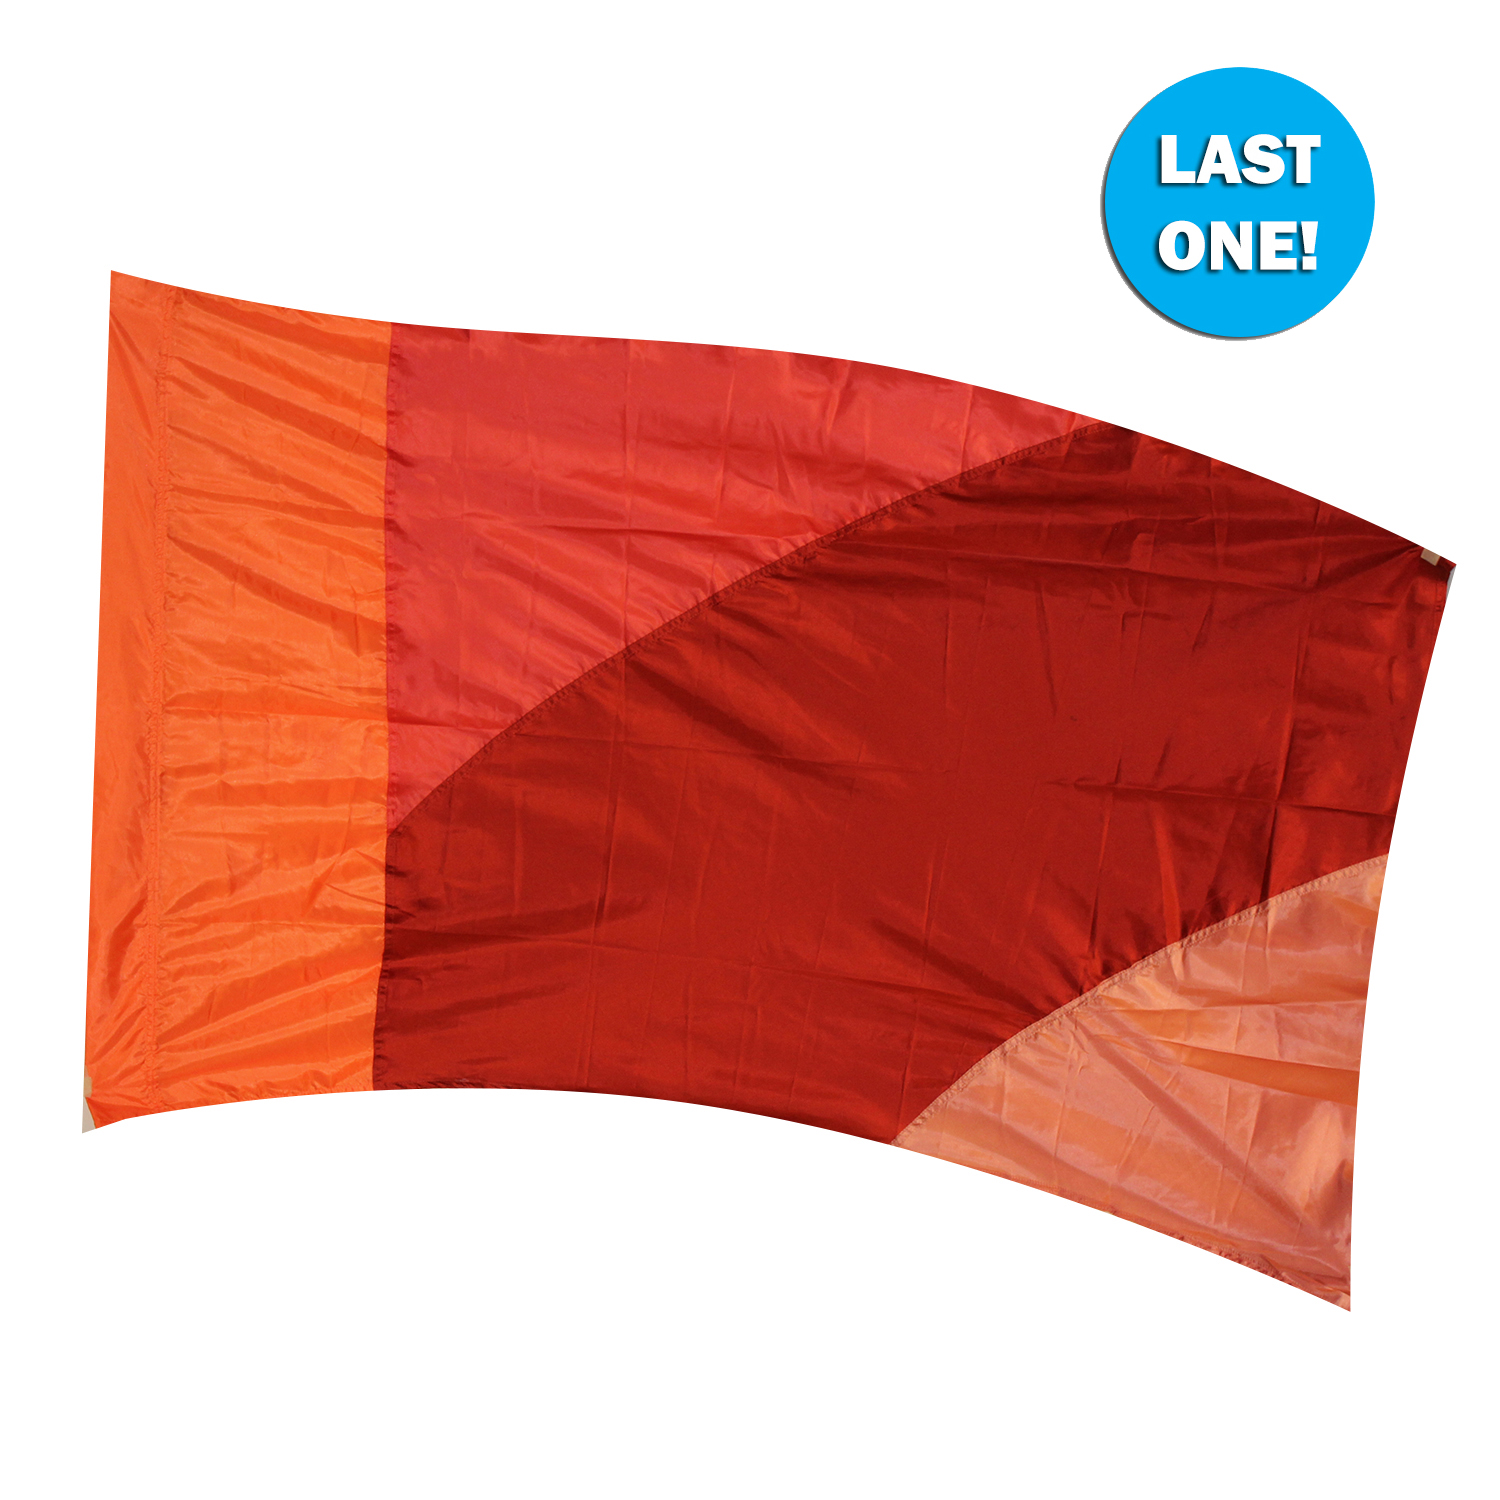 Closeout Flags: 090221